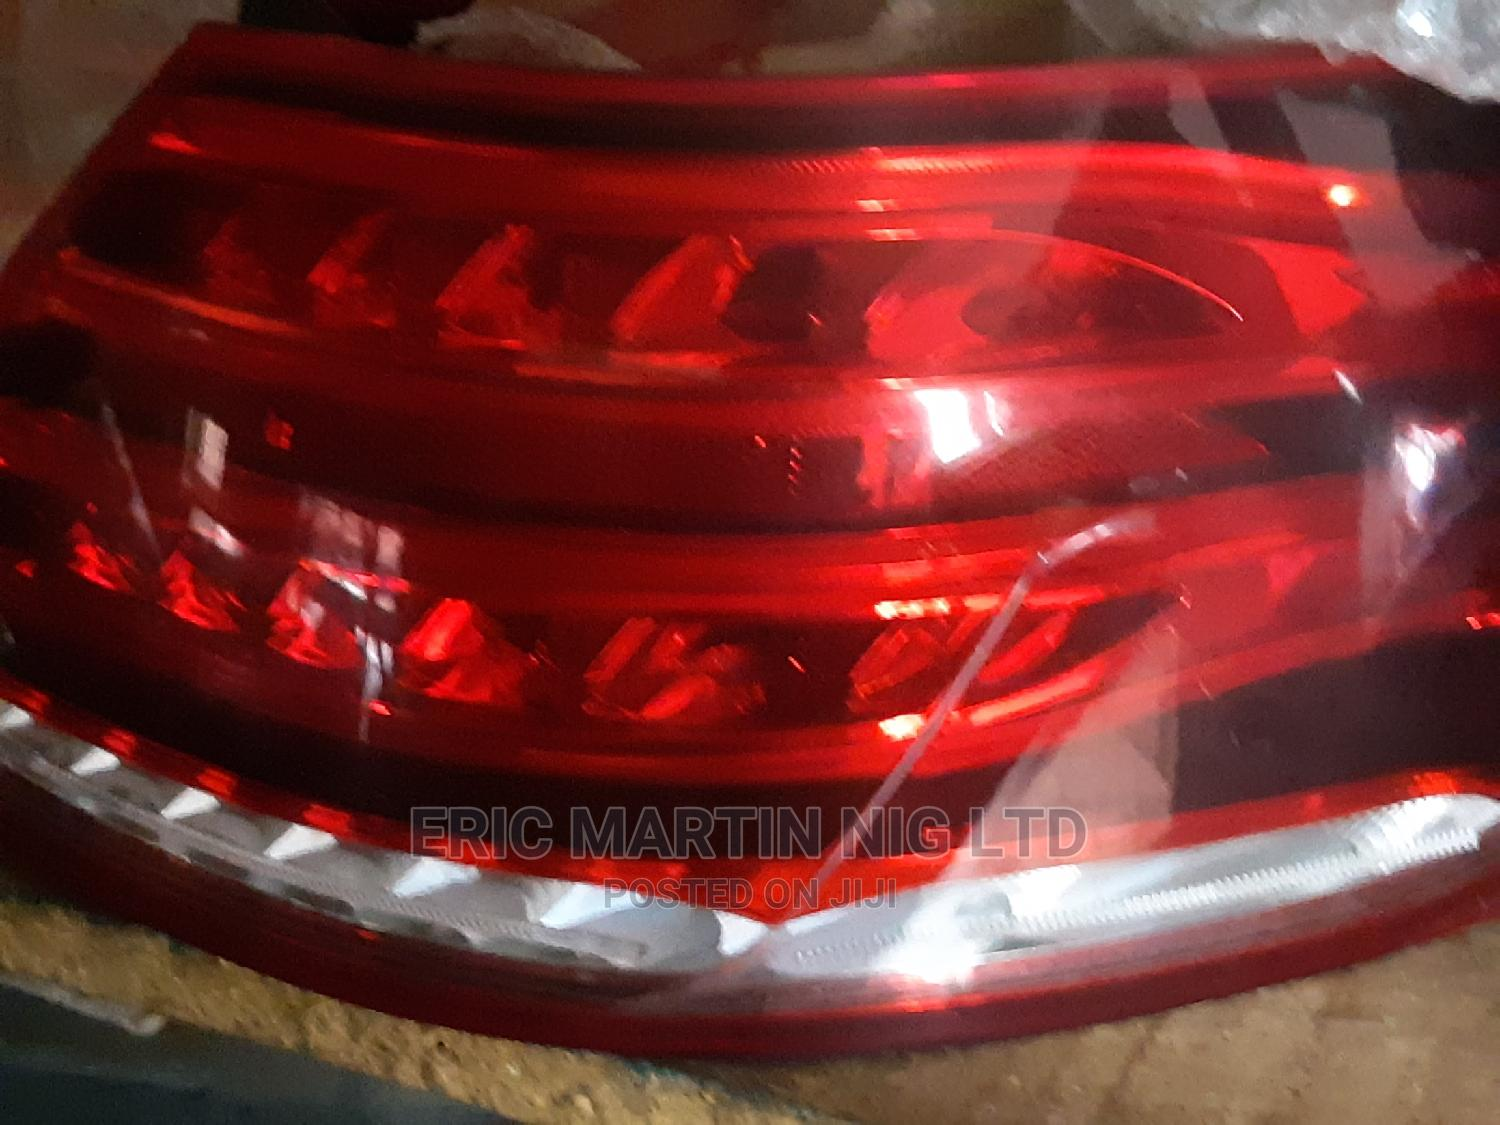 Set Rear Light Mercedes Benz Is Available